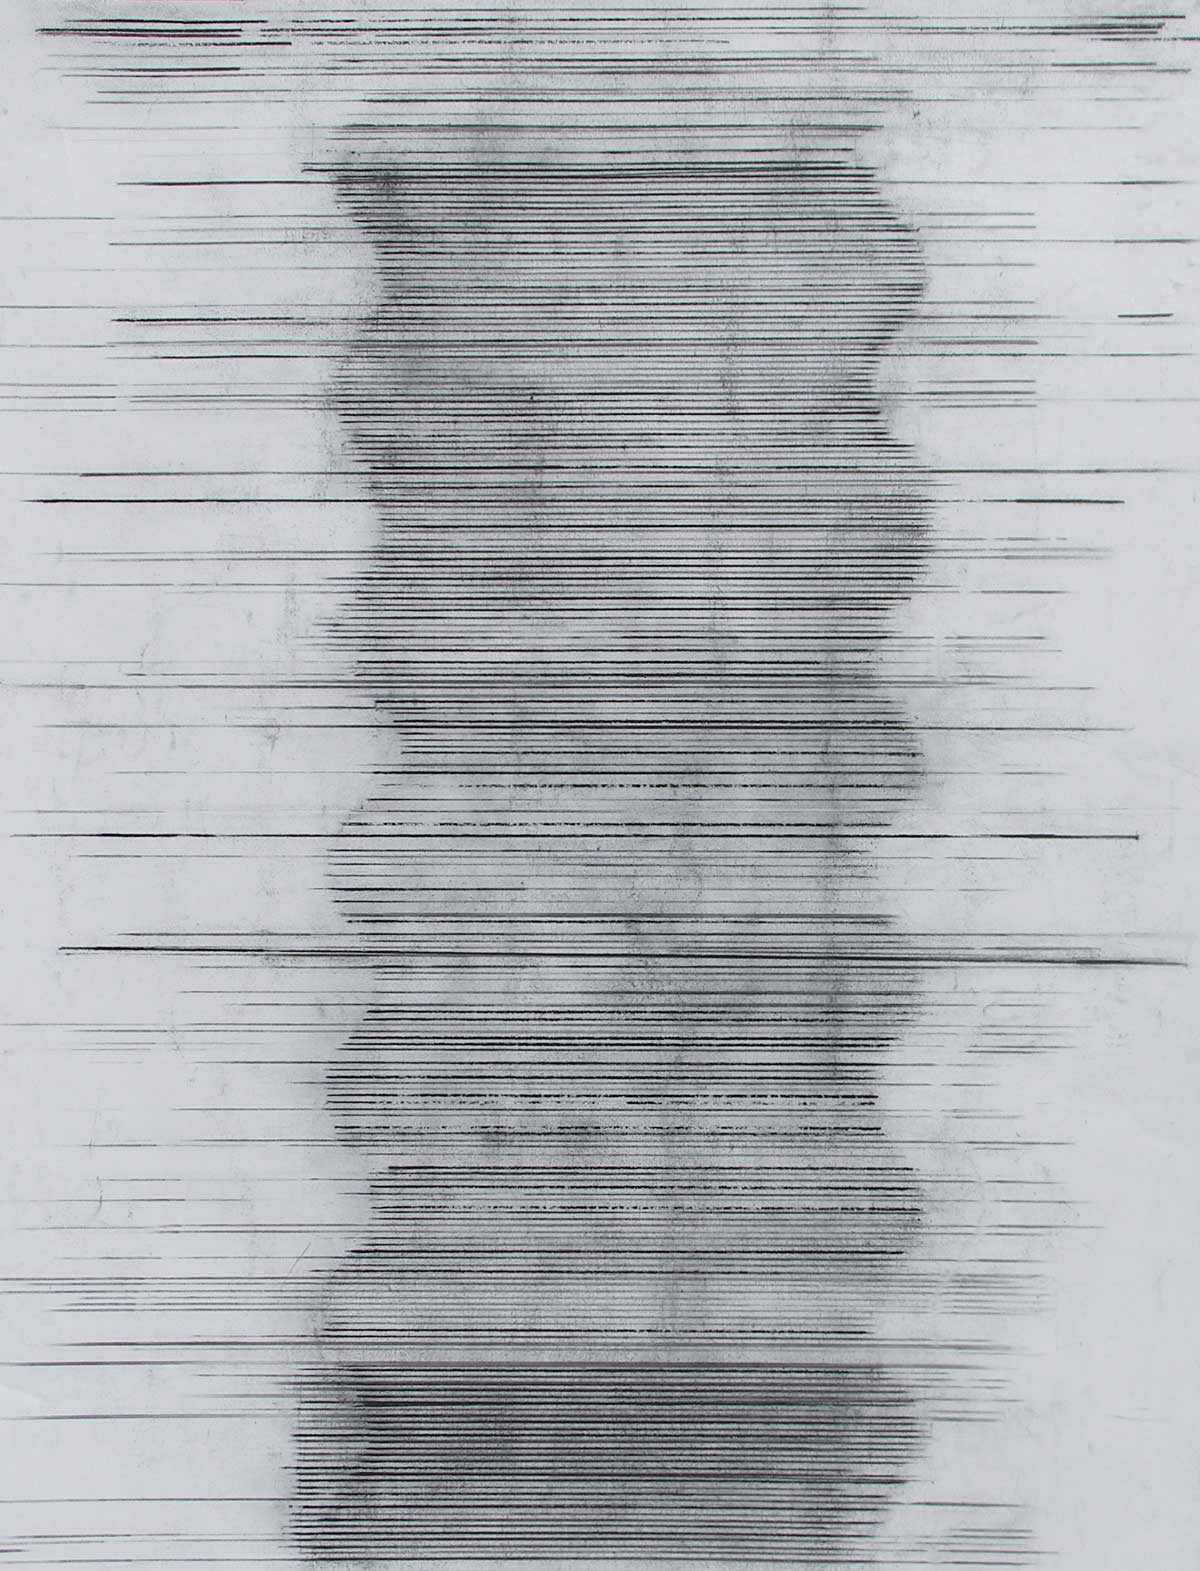 Touch 3, charcoal on paper, 128 x 94 cm